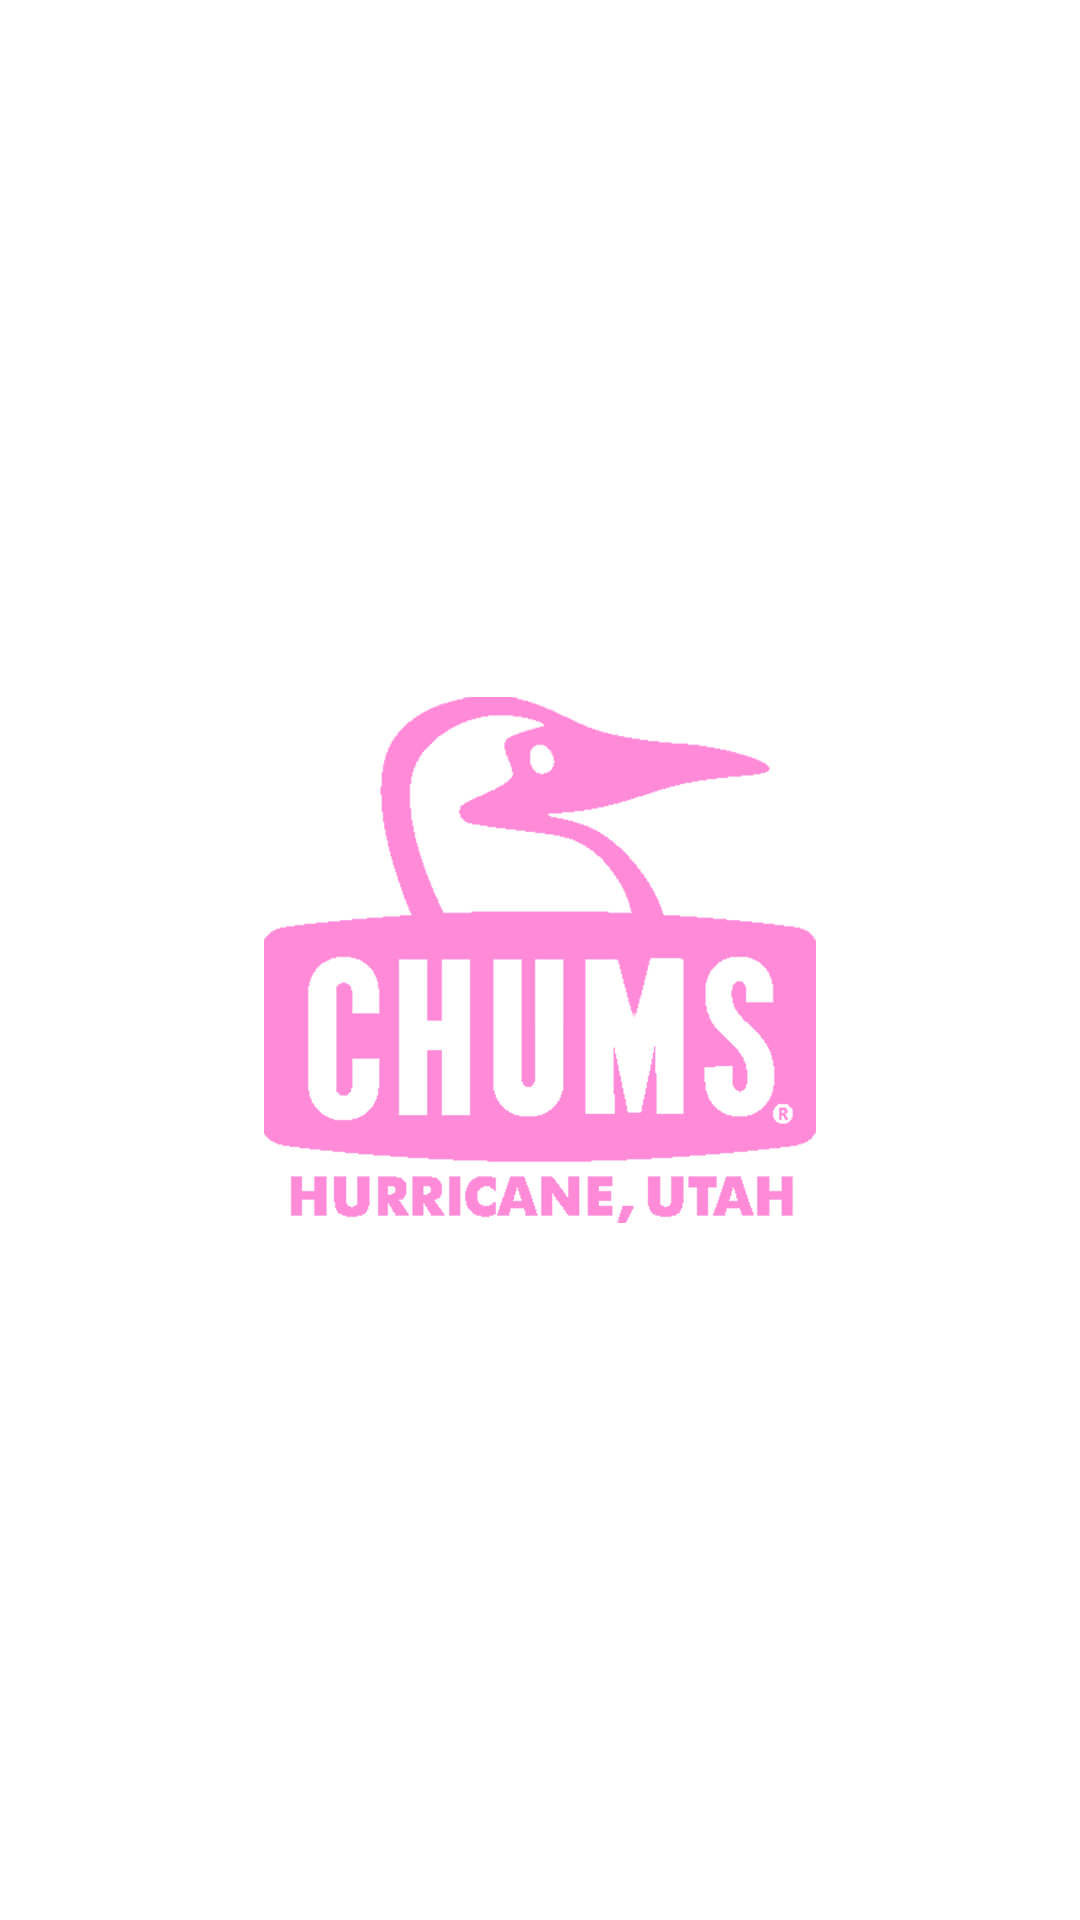 chums48 - 50 CHUMS HQ Smartphone Wallpaper Collection